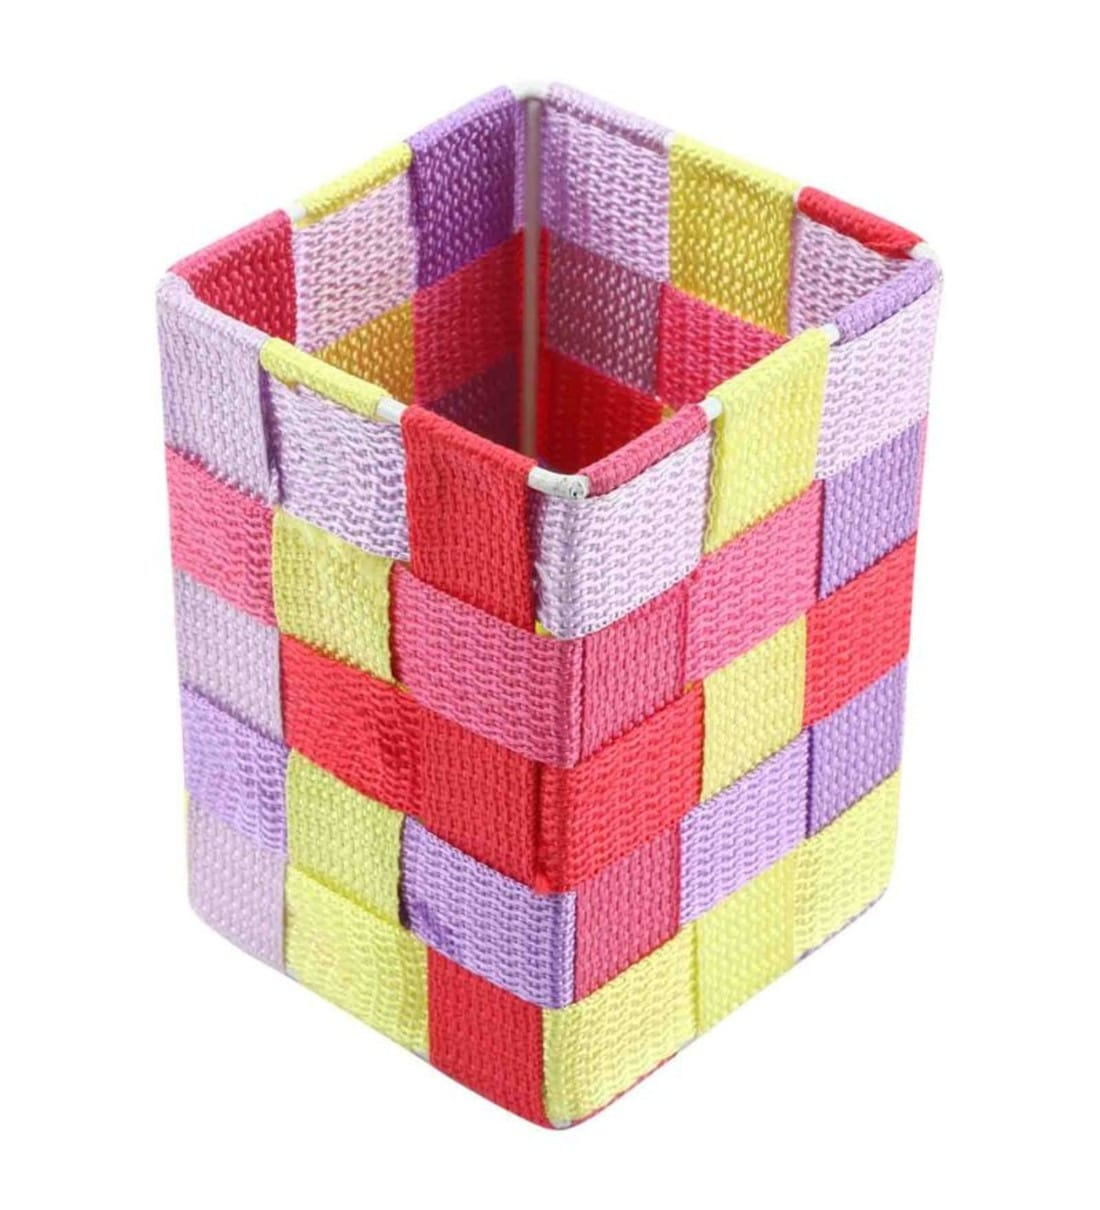 Picture of: Buy Cloth Wardrobe Baskets 1 Piece Online Wardrobe Baskets Accessory Holders Discontinued Pepperfry Product